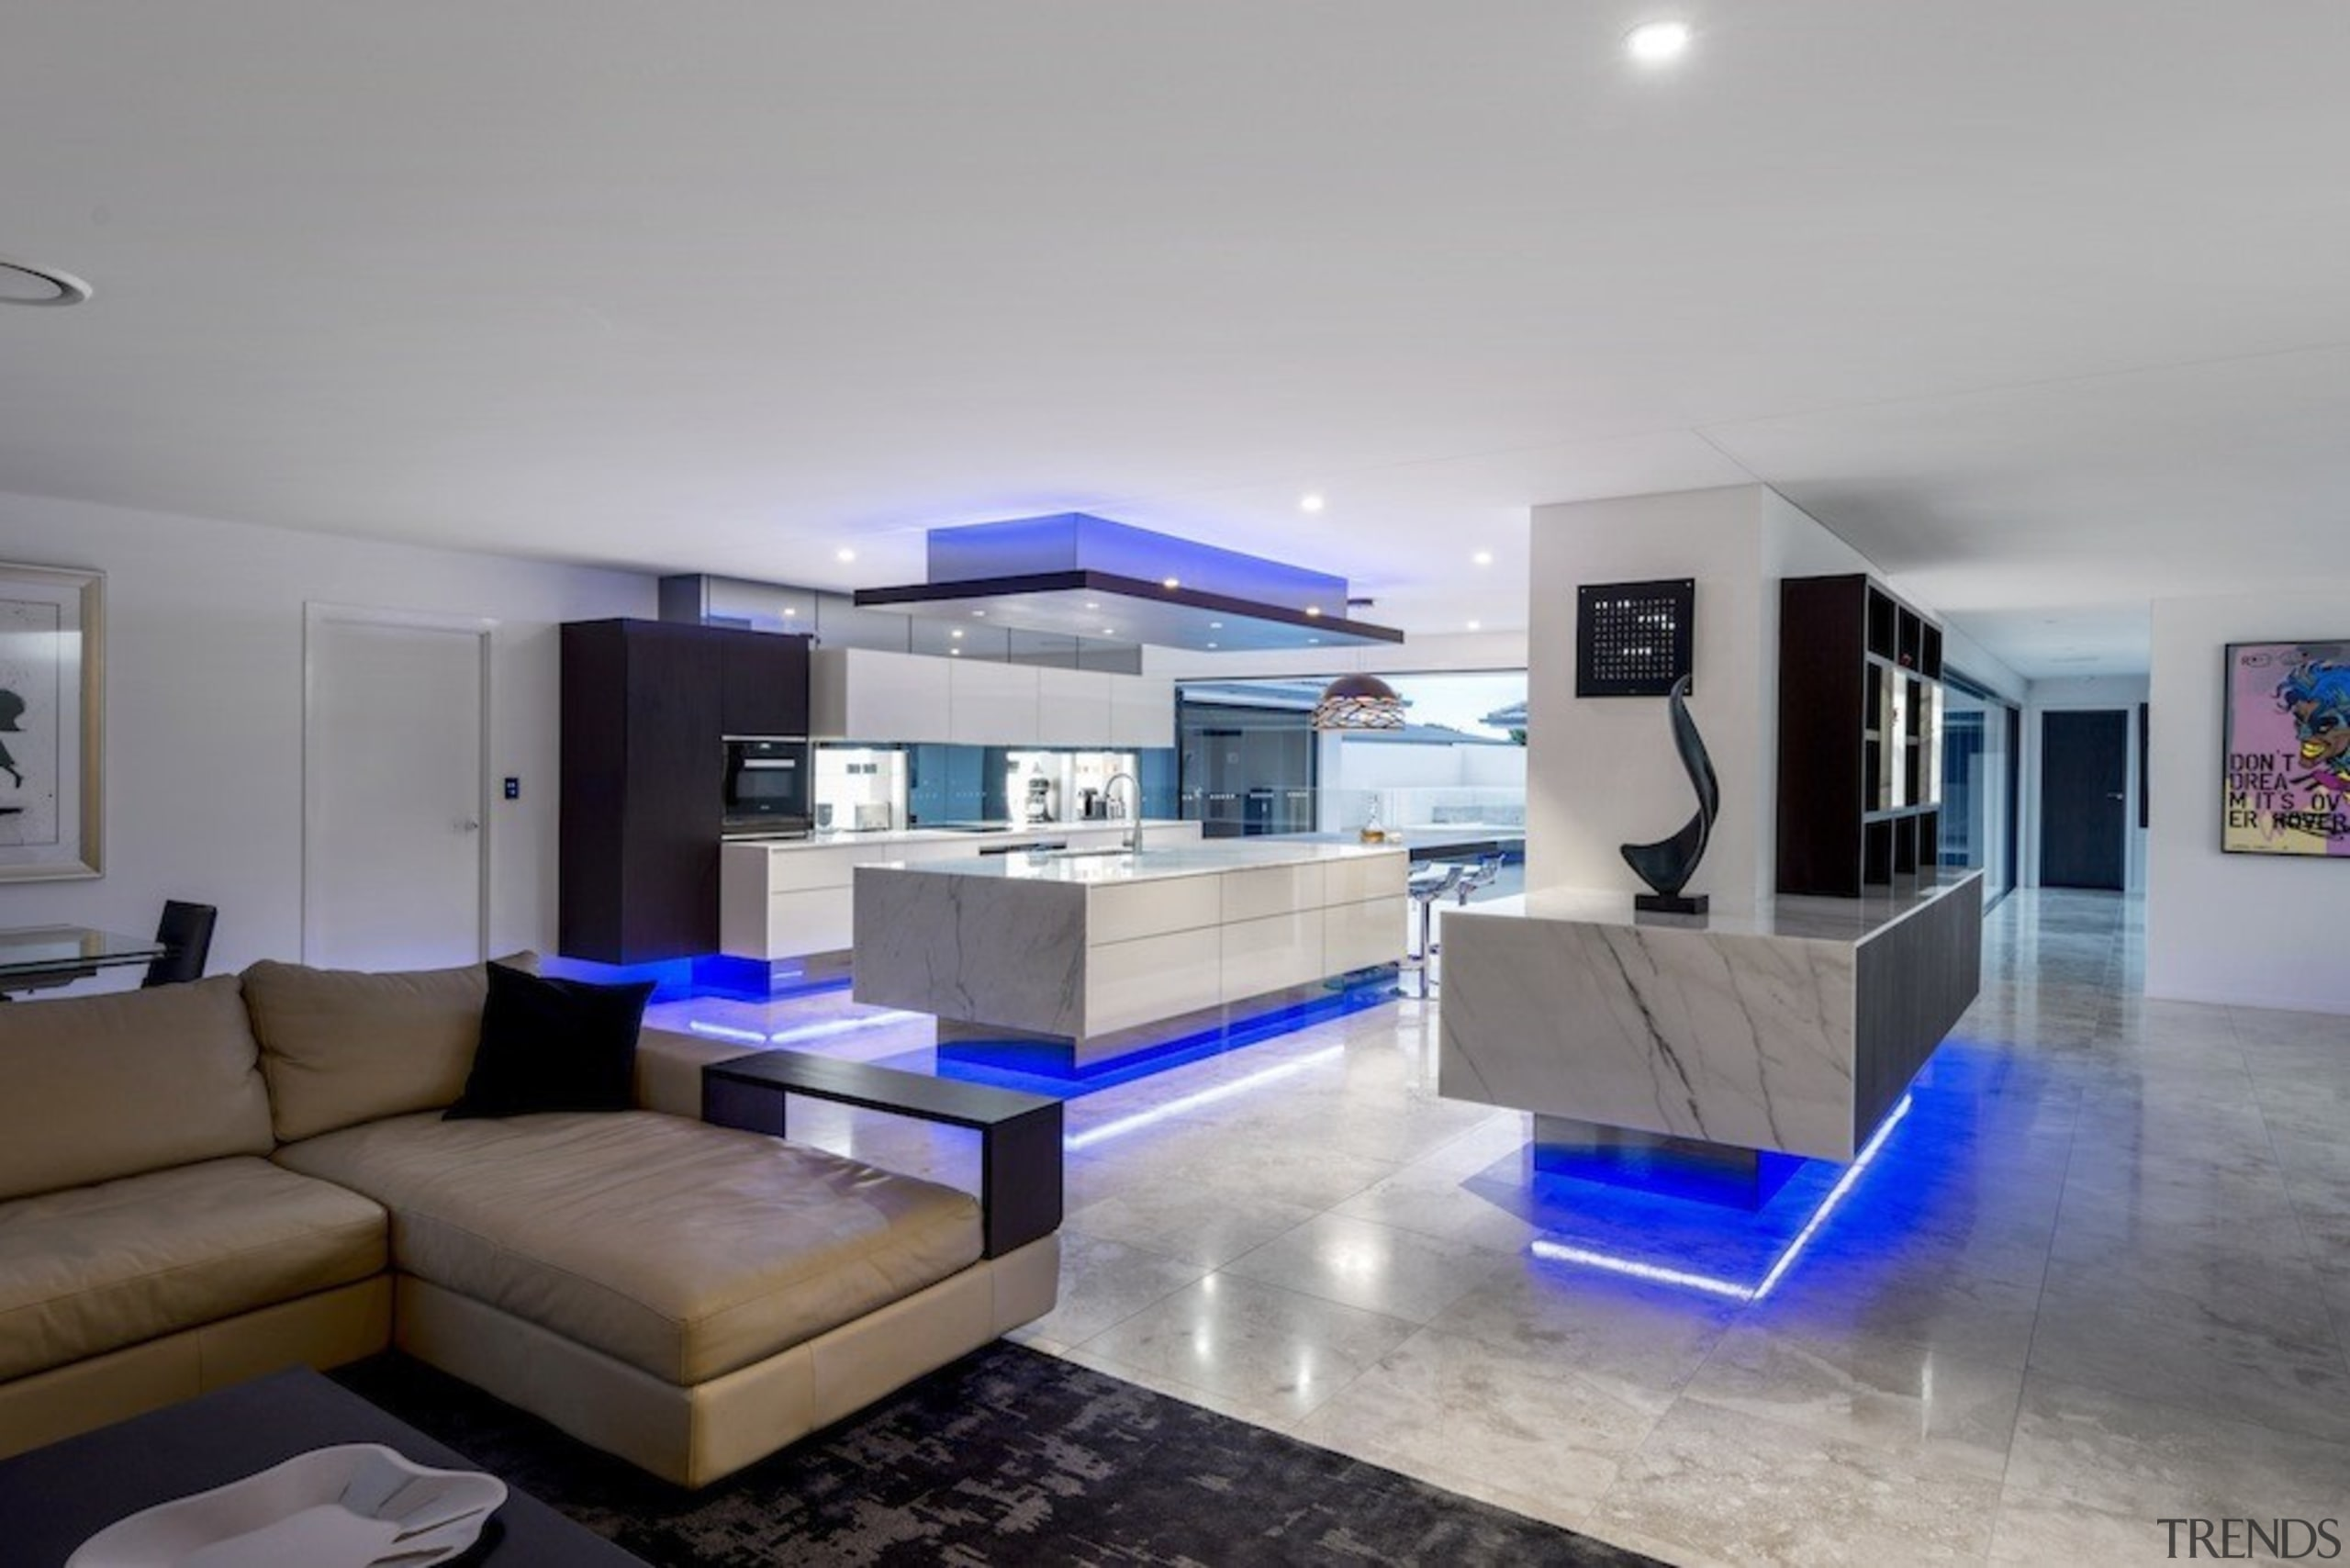 A focus on lighting – Kitchen by designer architecture, ceiling, house, interior design, living room, property, real estate, gray